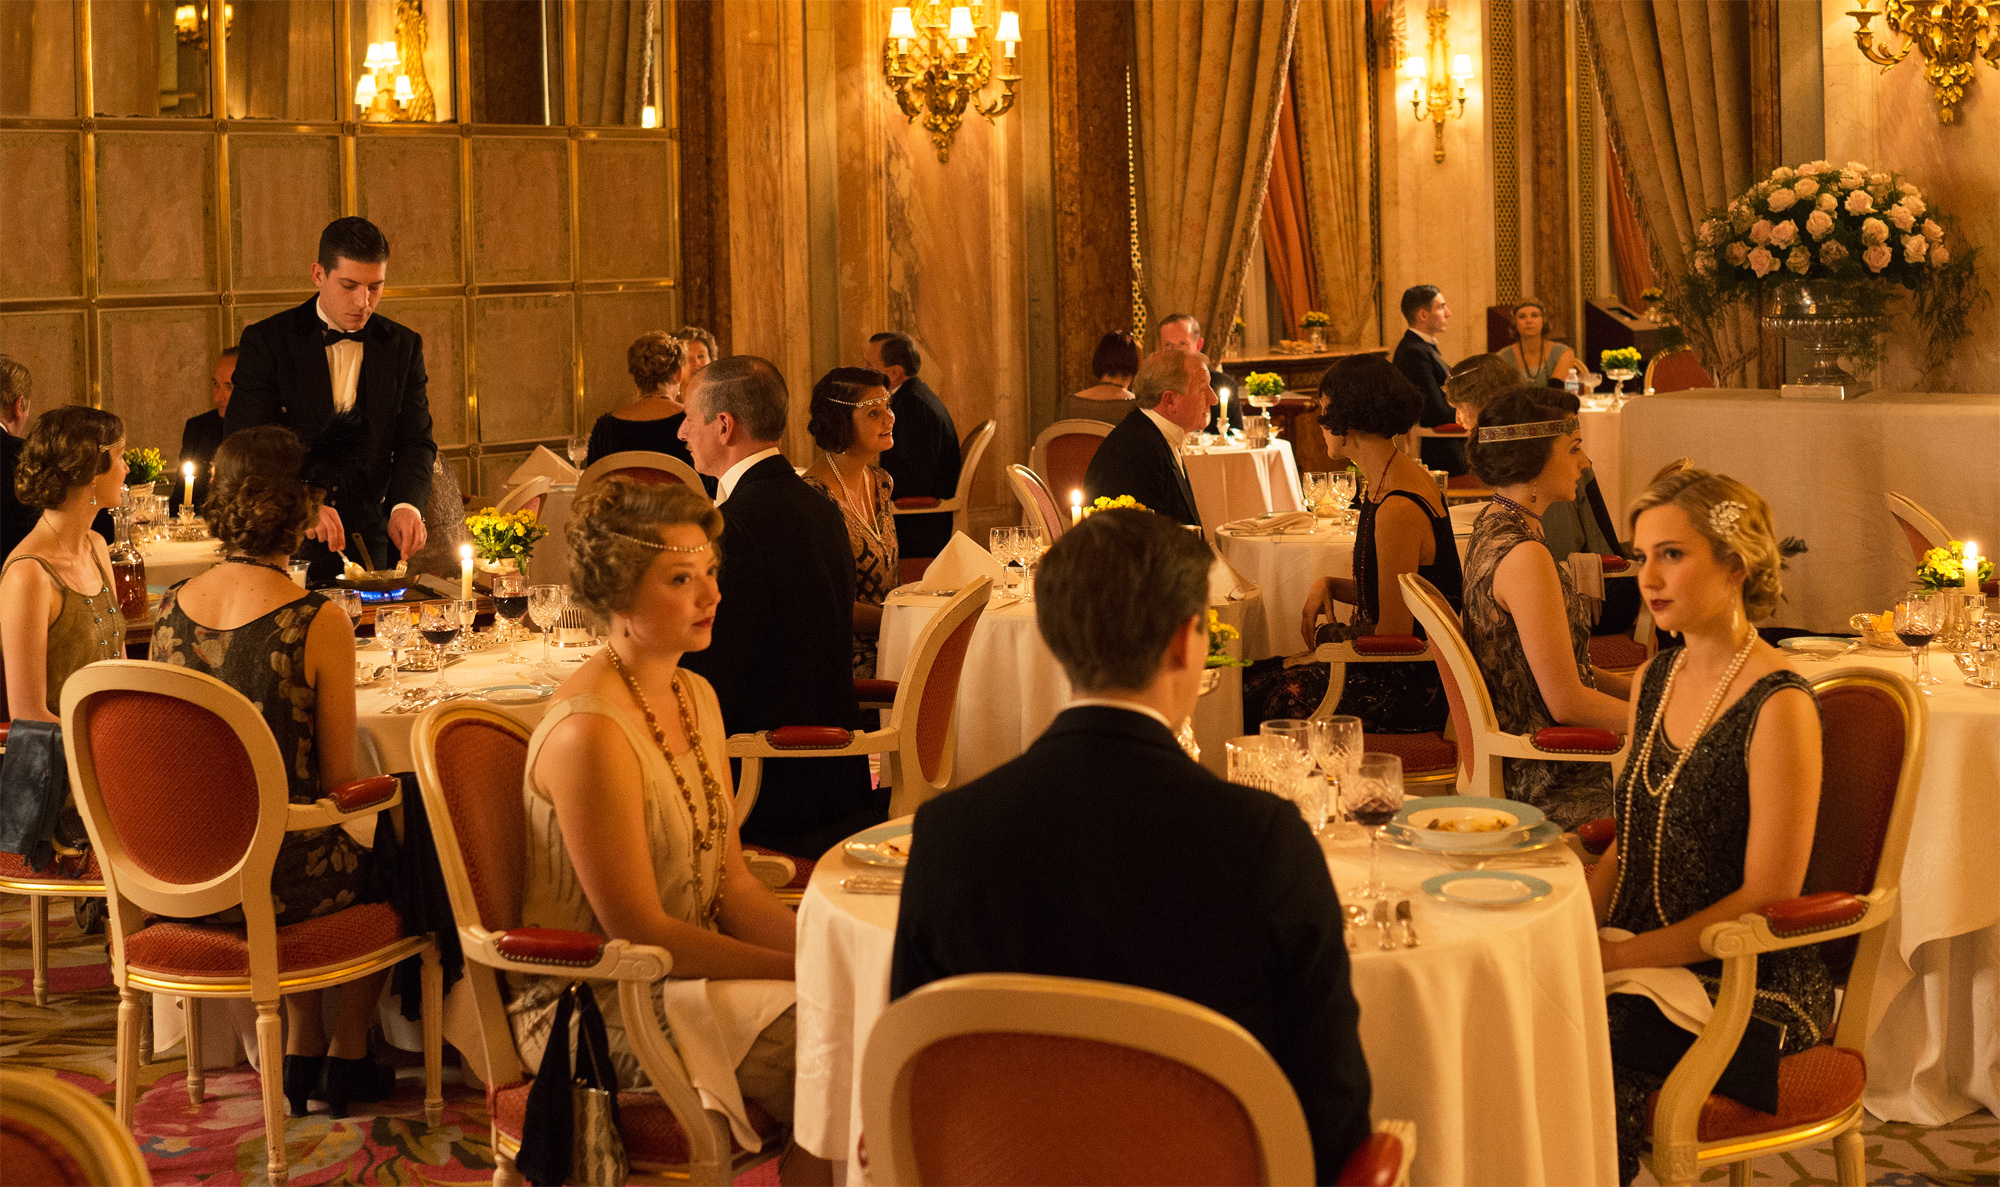 downton abbey's putting on the ritz for the privileged few